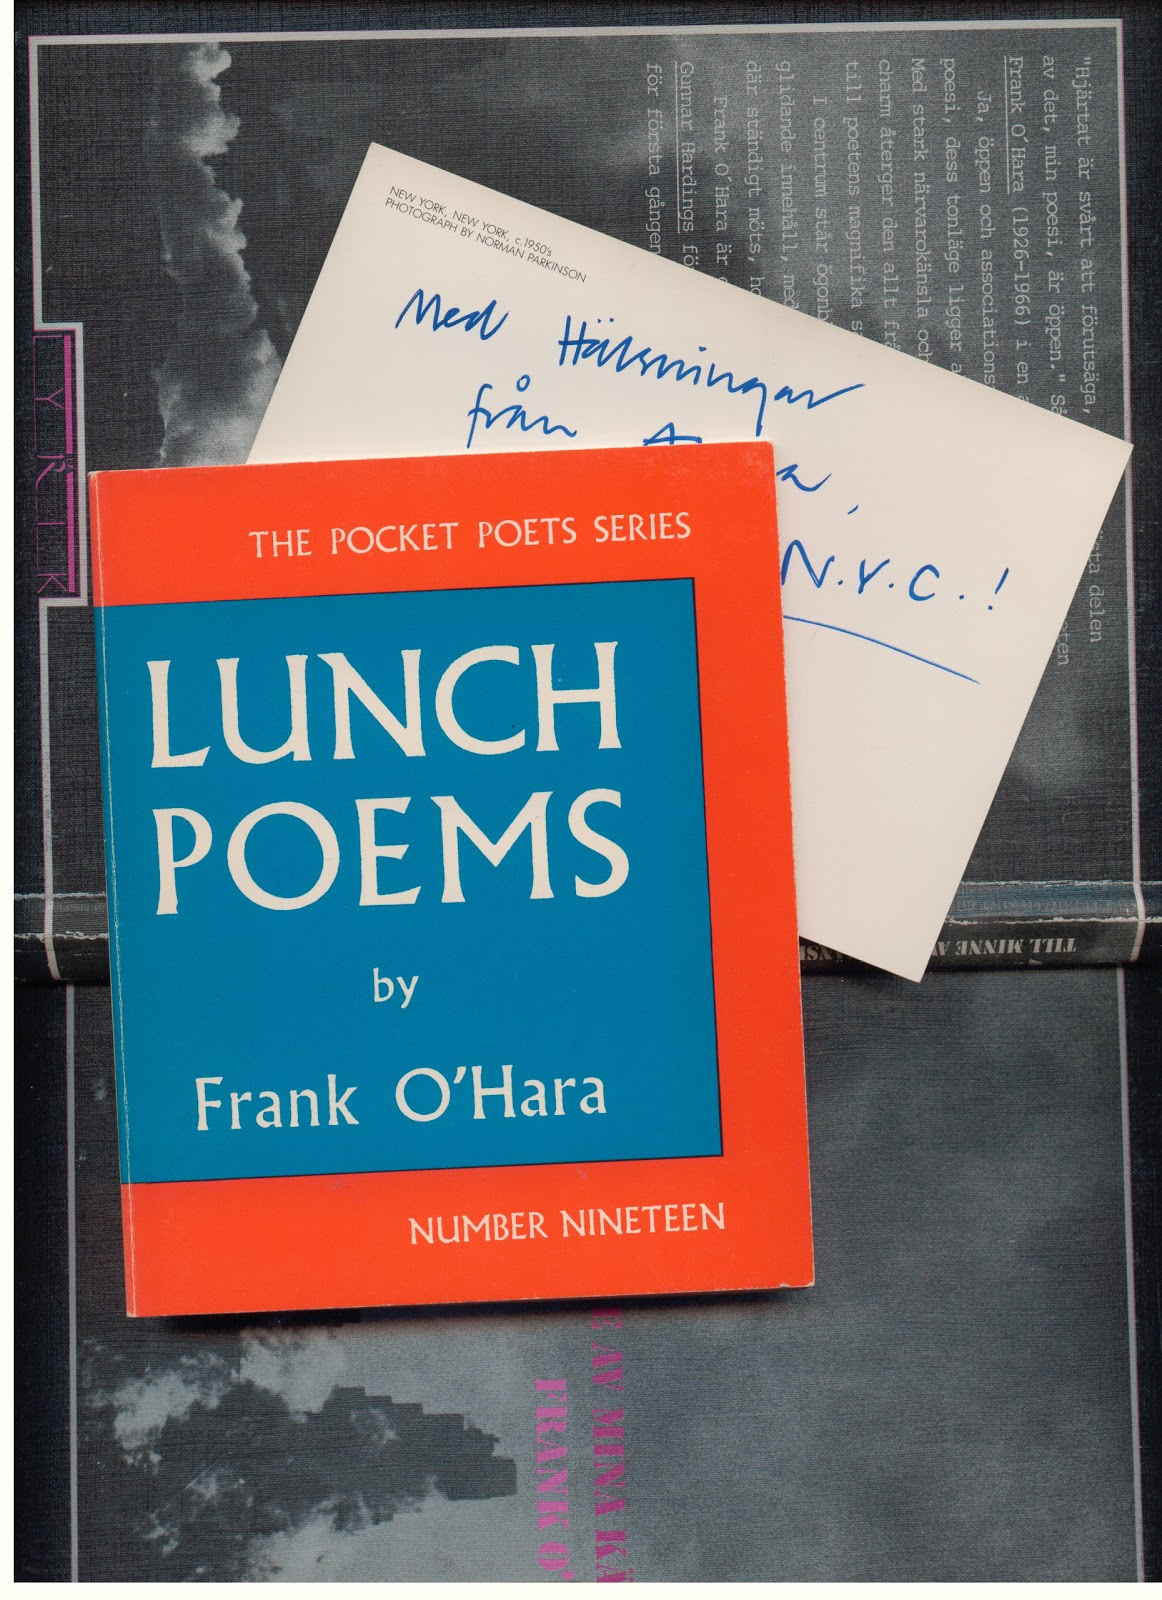 Lunch Poems, a book by Frank O´Hara | FORUM FORTS